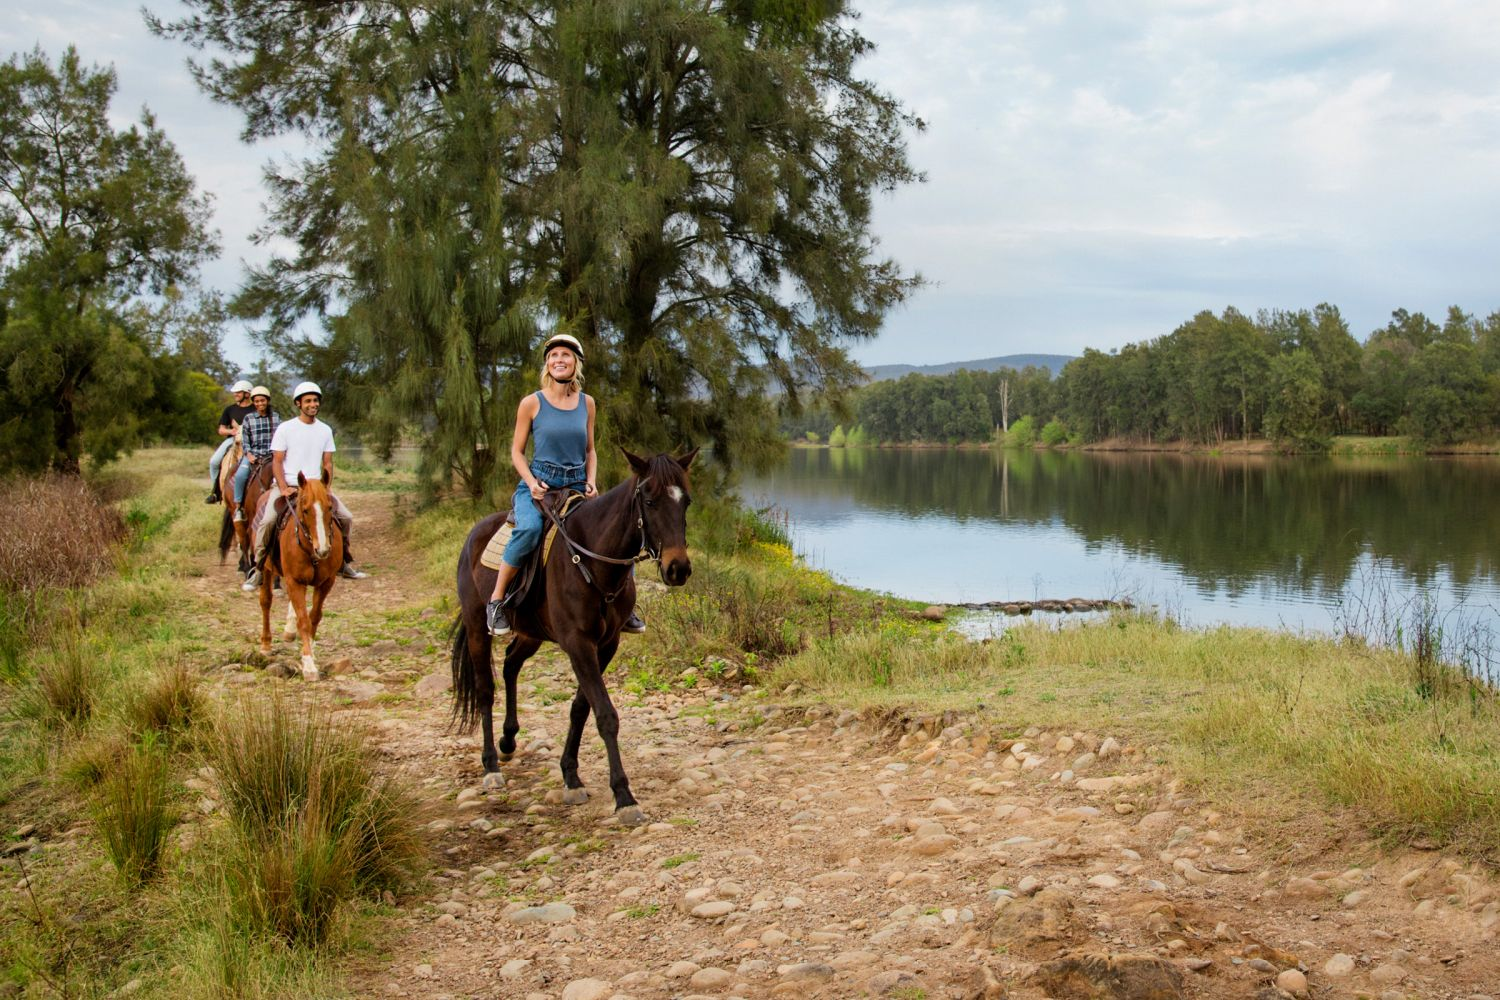 Horseriding by the river in the Hawkesbury Region